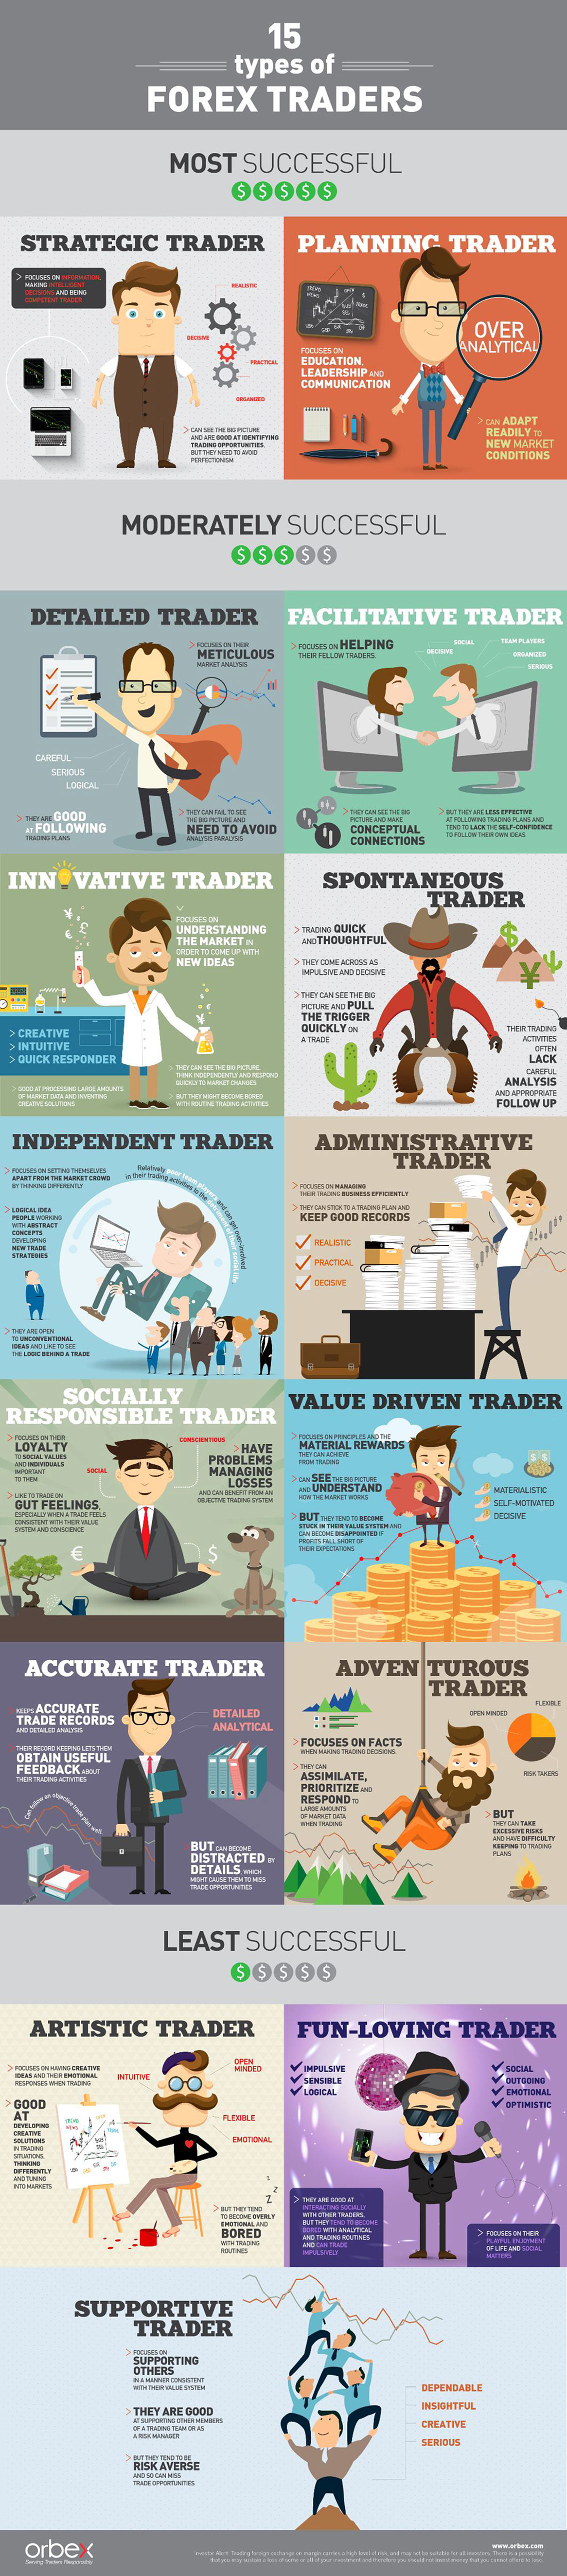 15 Types of FOREX TRADERS